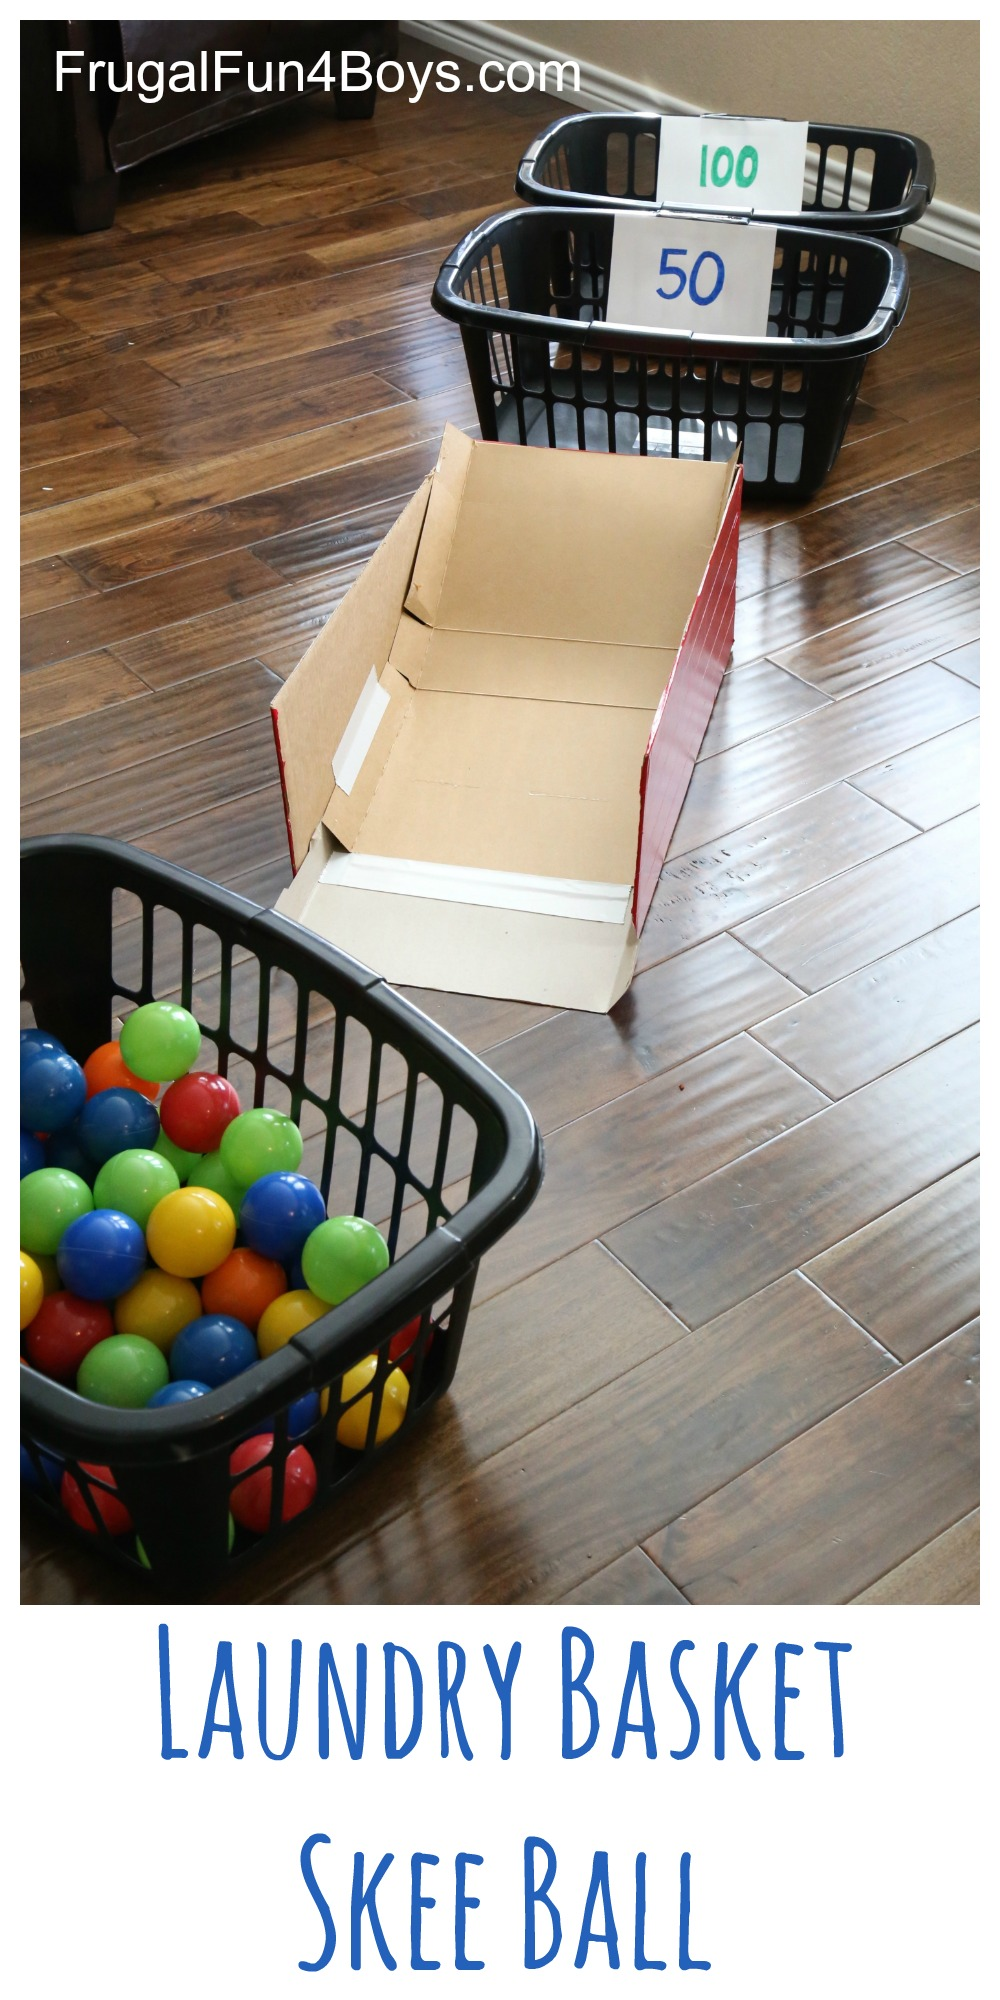 Active games clipart png library stock Laundry Basket Skee Ball (With Ball Pit Balls!) - Frugal Fun For ... png library stock